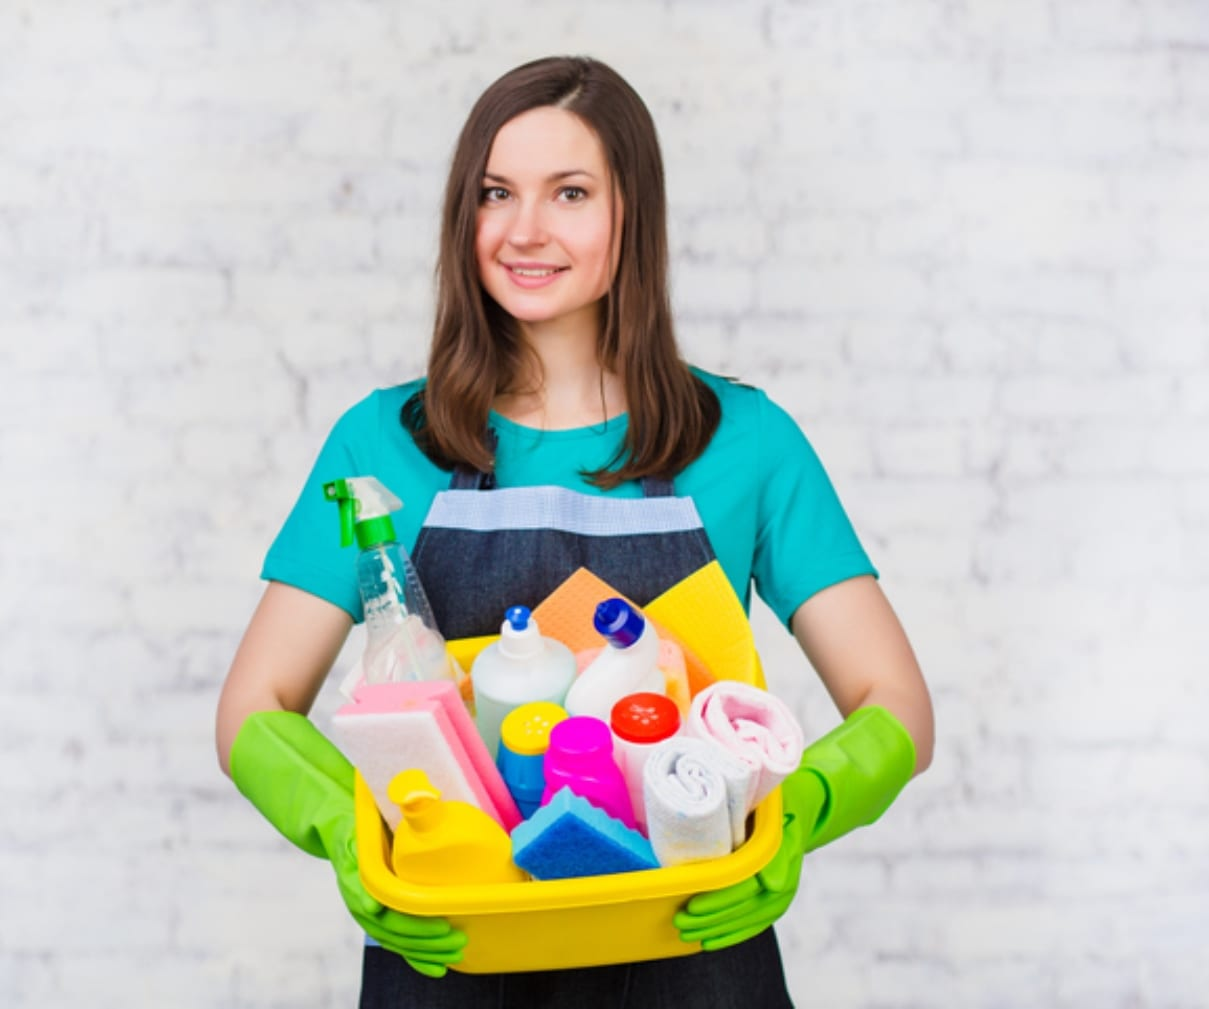 Your choice of traditional or green cleaning products.